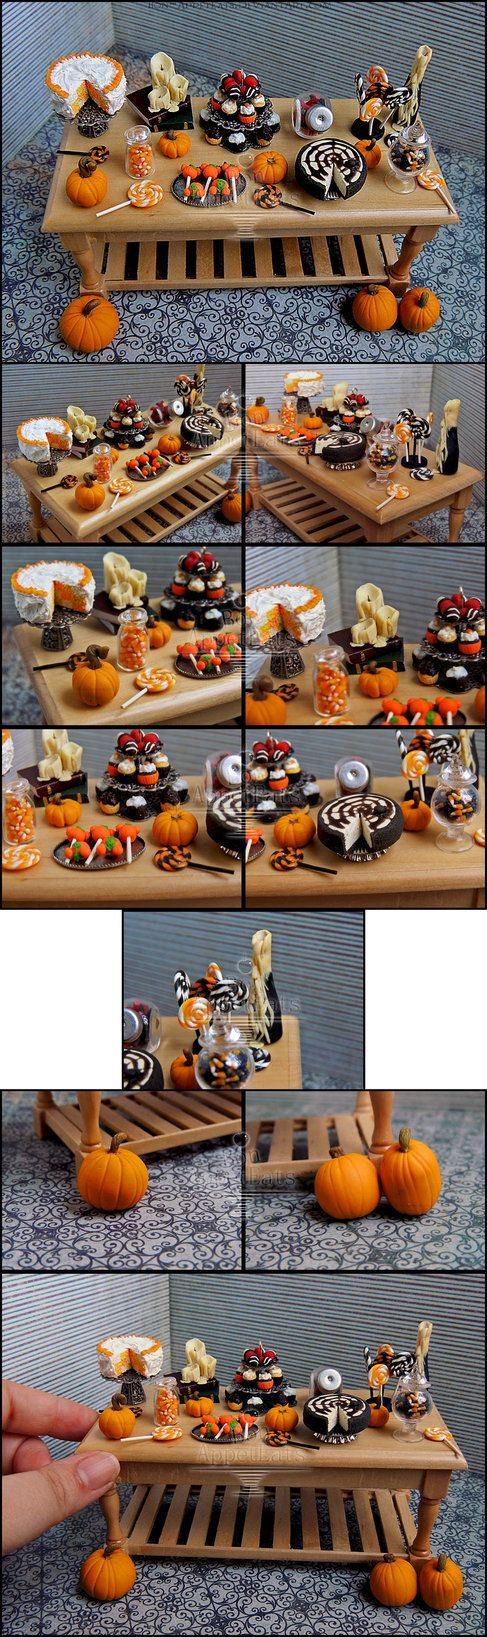 1:12 Halloween Table Details by Bon-AppetEats sooo neat